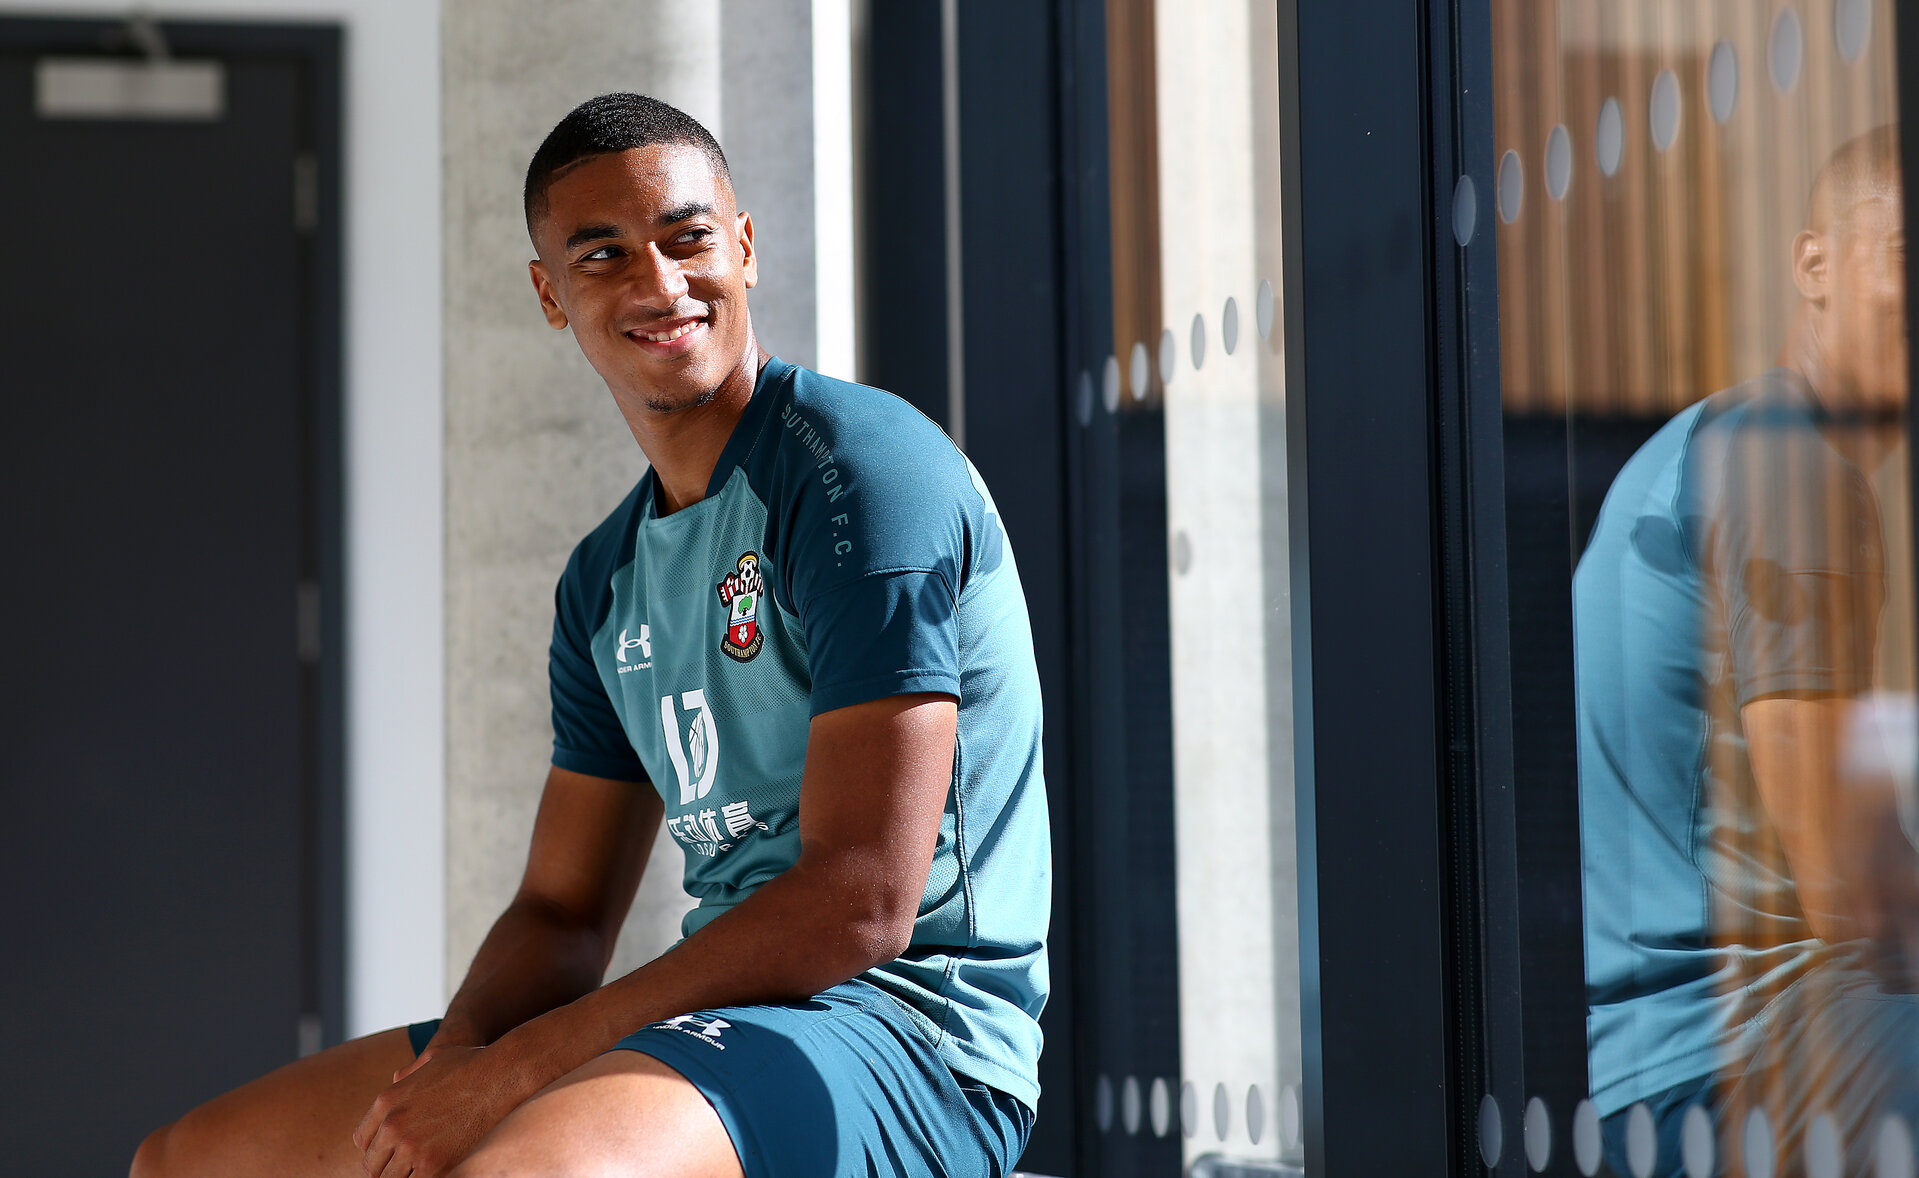 SOUTHAMPTON, ENGLAND - AUGUST 29: Yan Valery of Southampton pictured for the club's match day magazine, at the Staplewood Campus on August 29, 2019 in Southampton, England. (Photo by Matt Watson/Southampton FC via Getty Images)